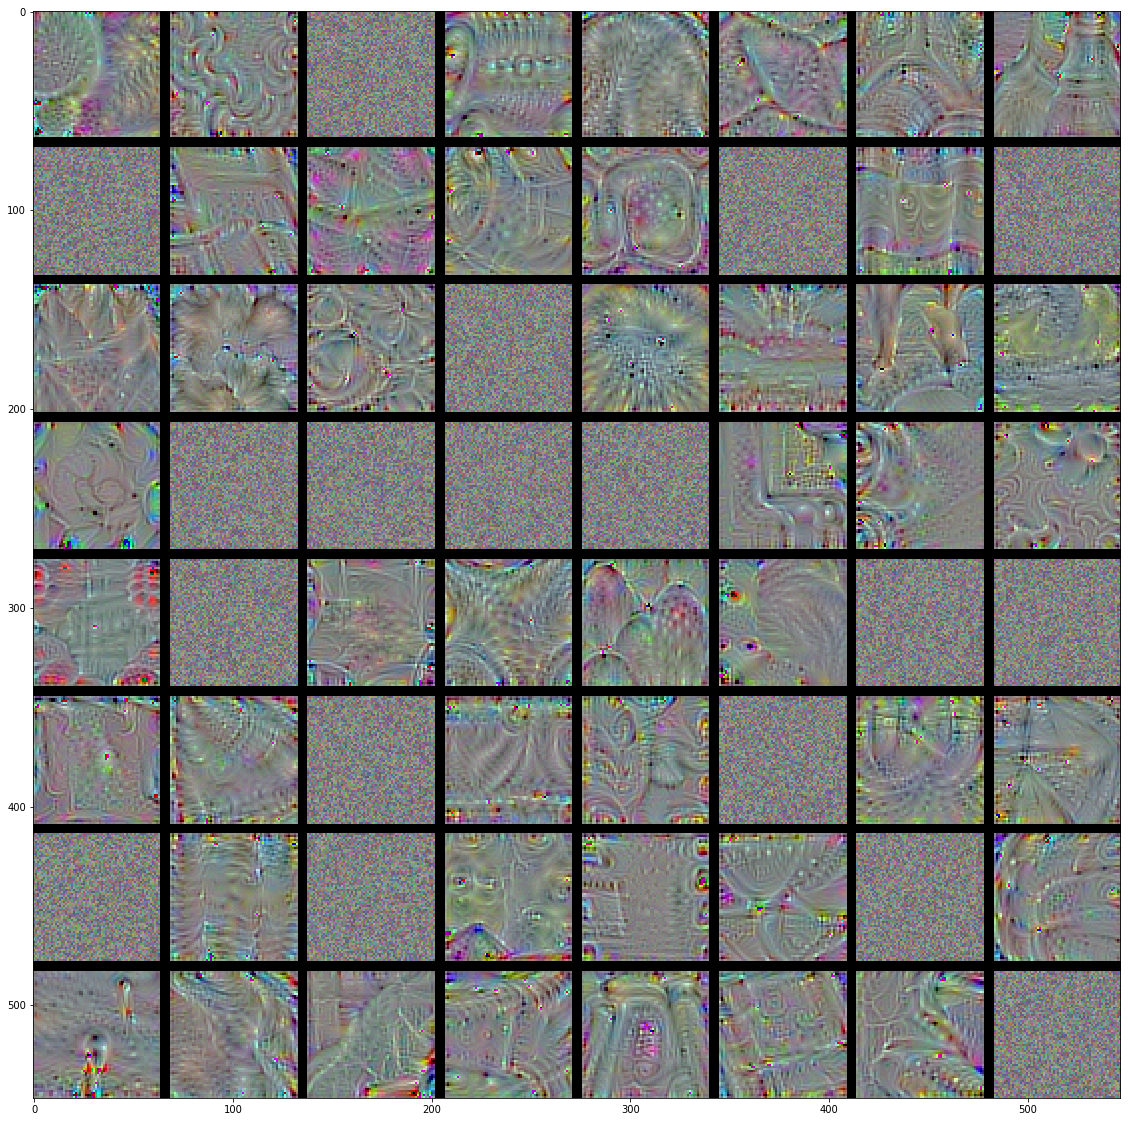 55.png-930.4kB